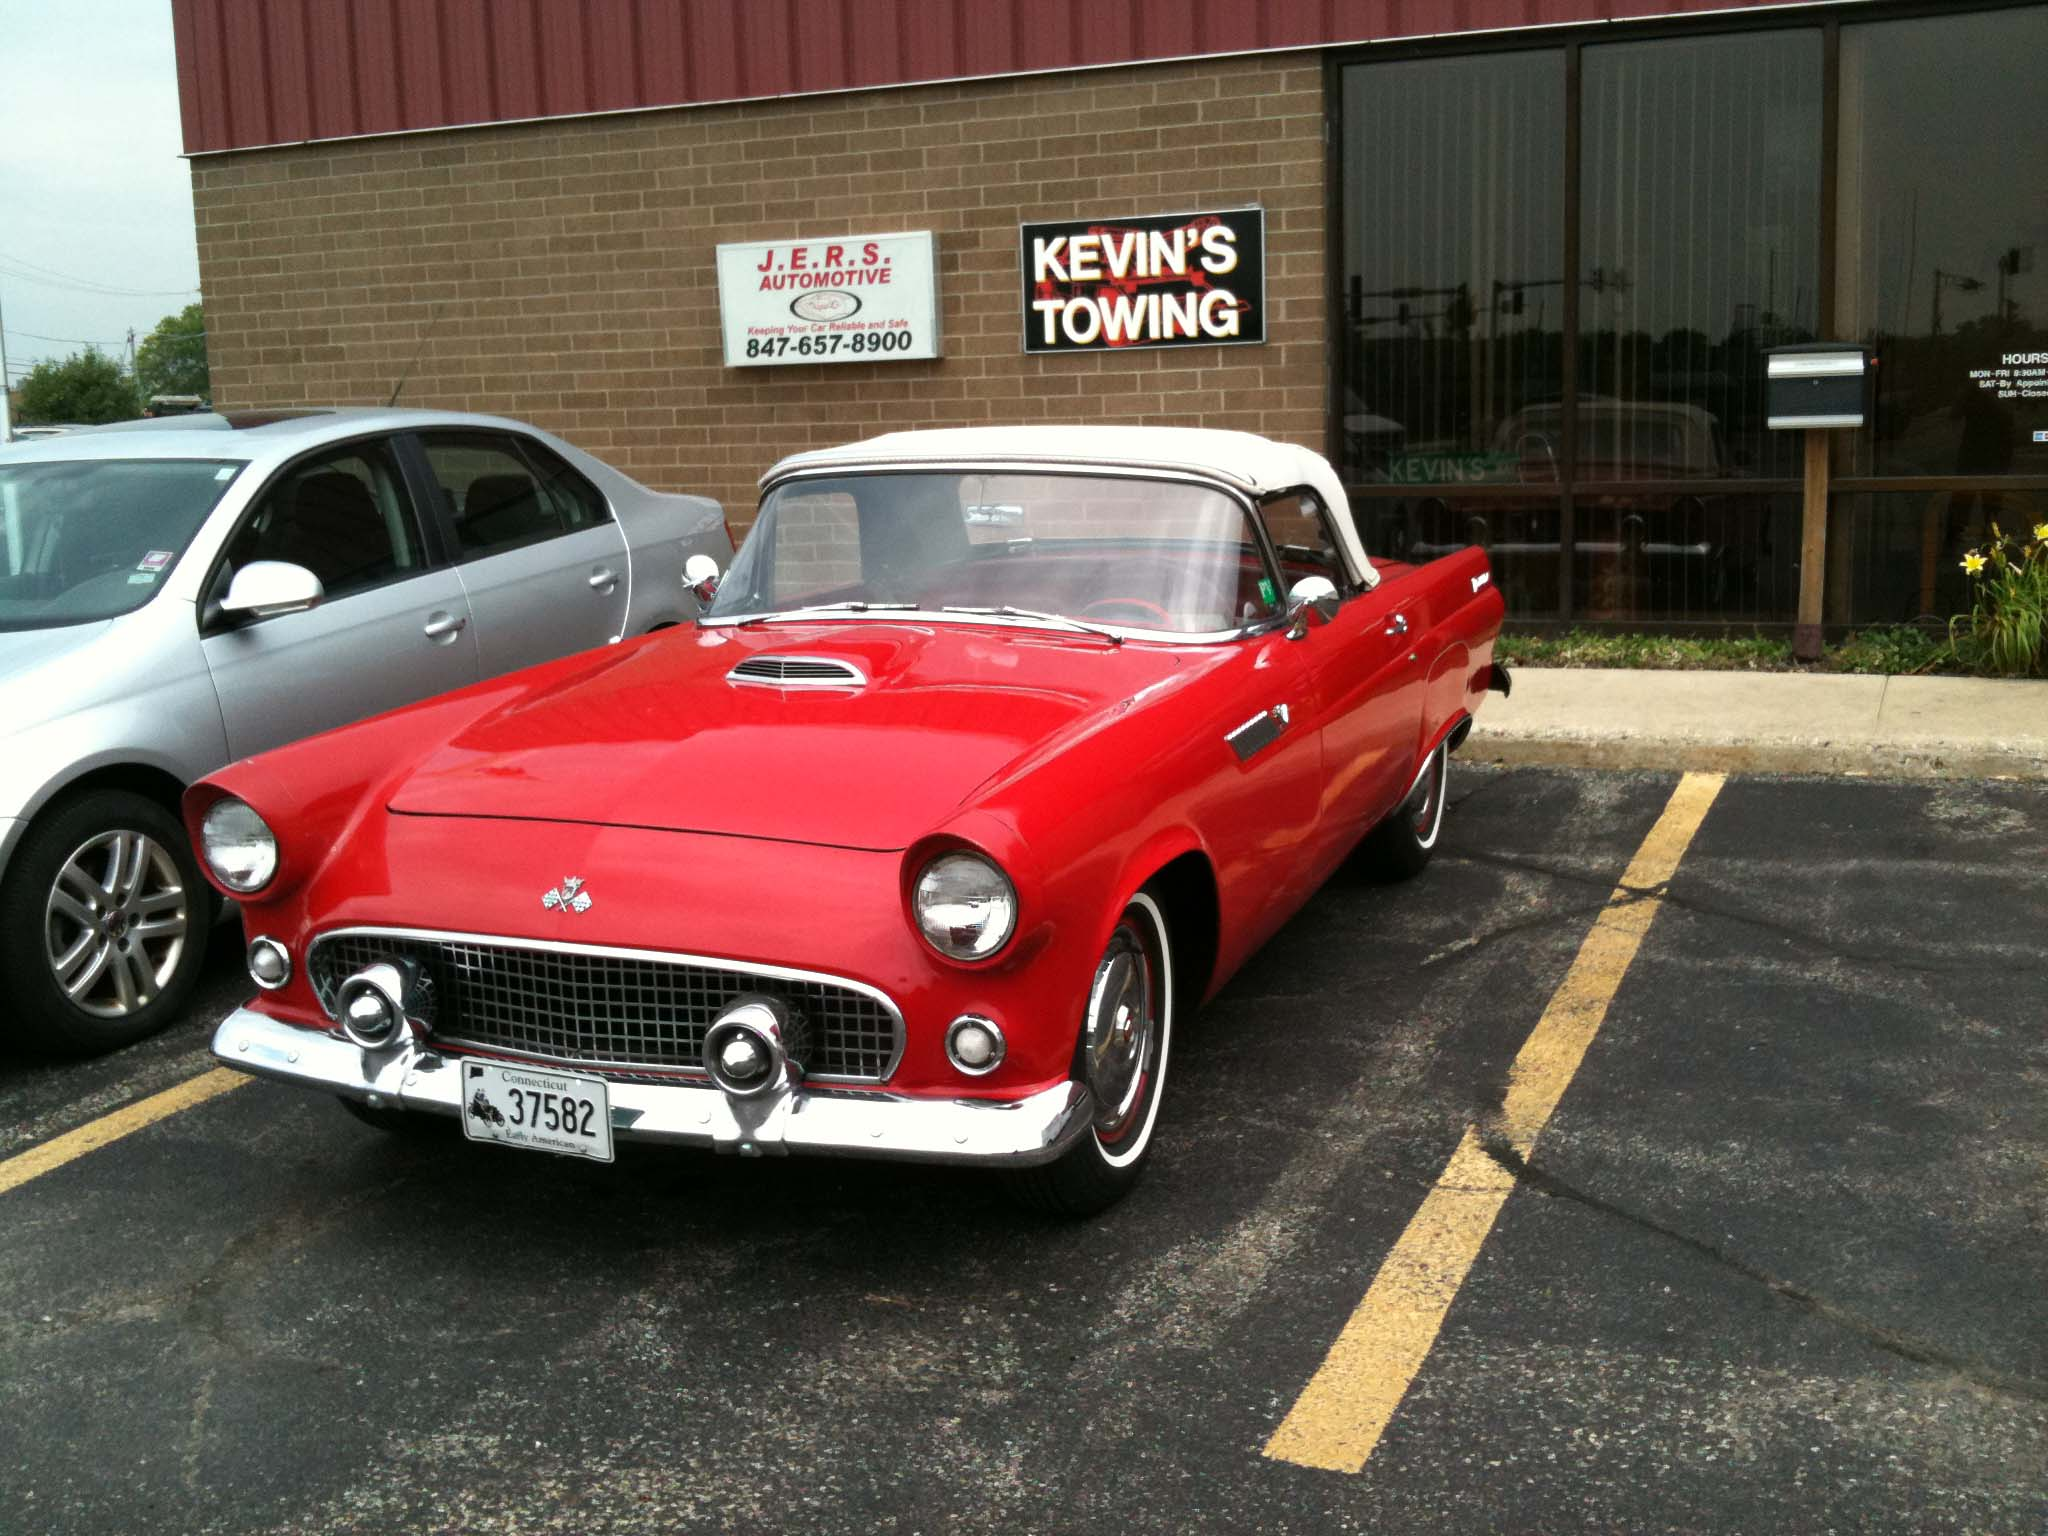 1955 T Bird At JERS Automotive